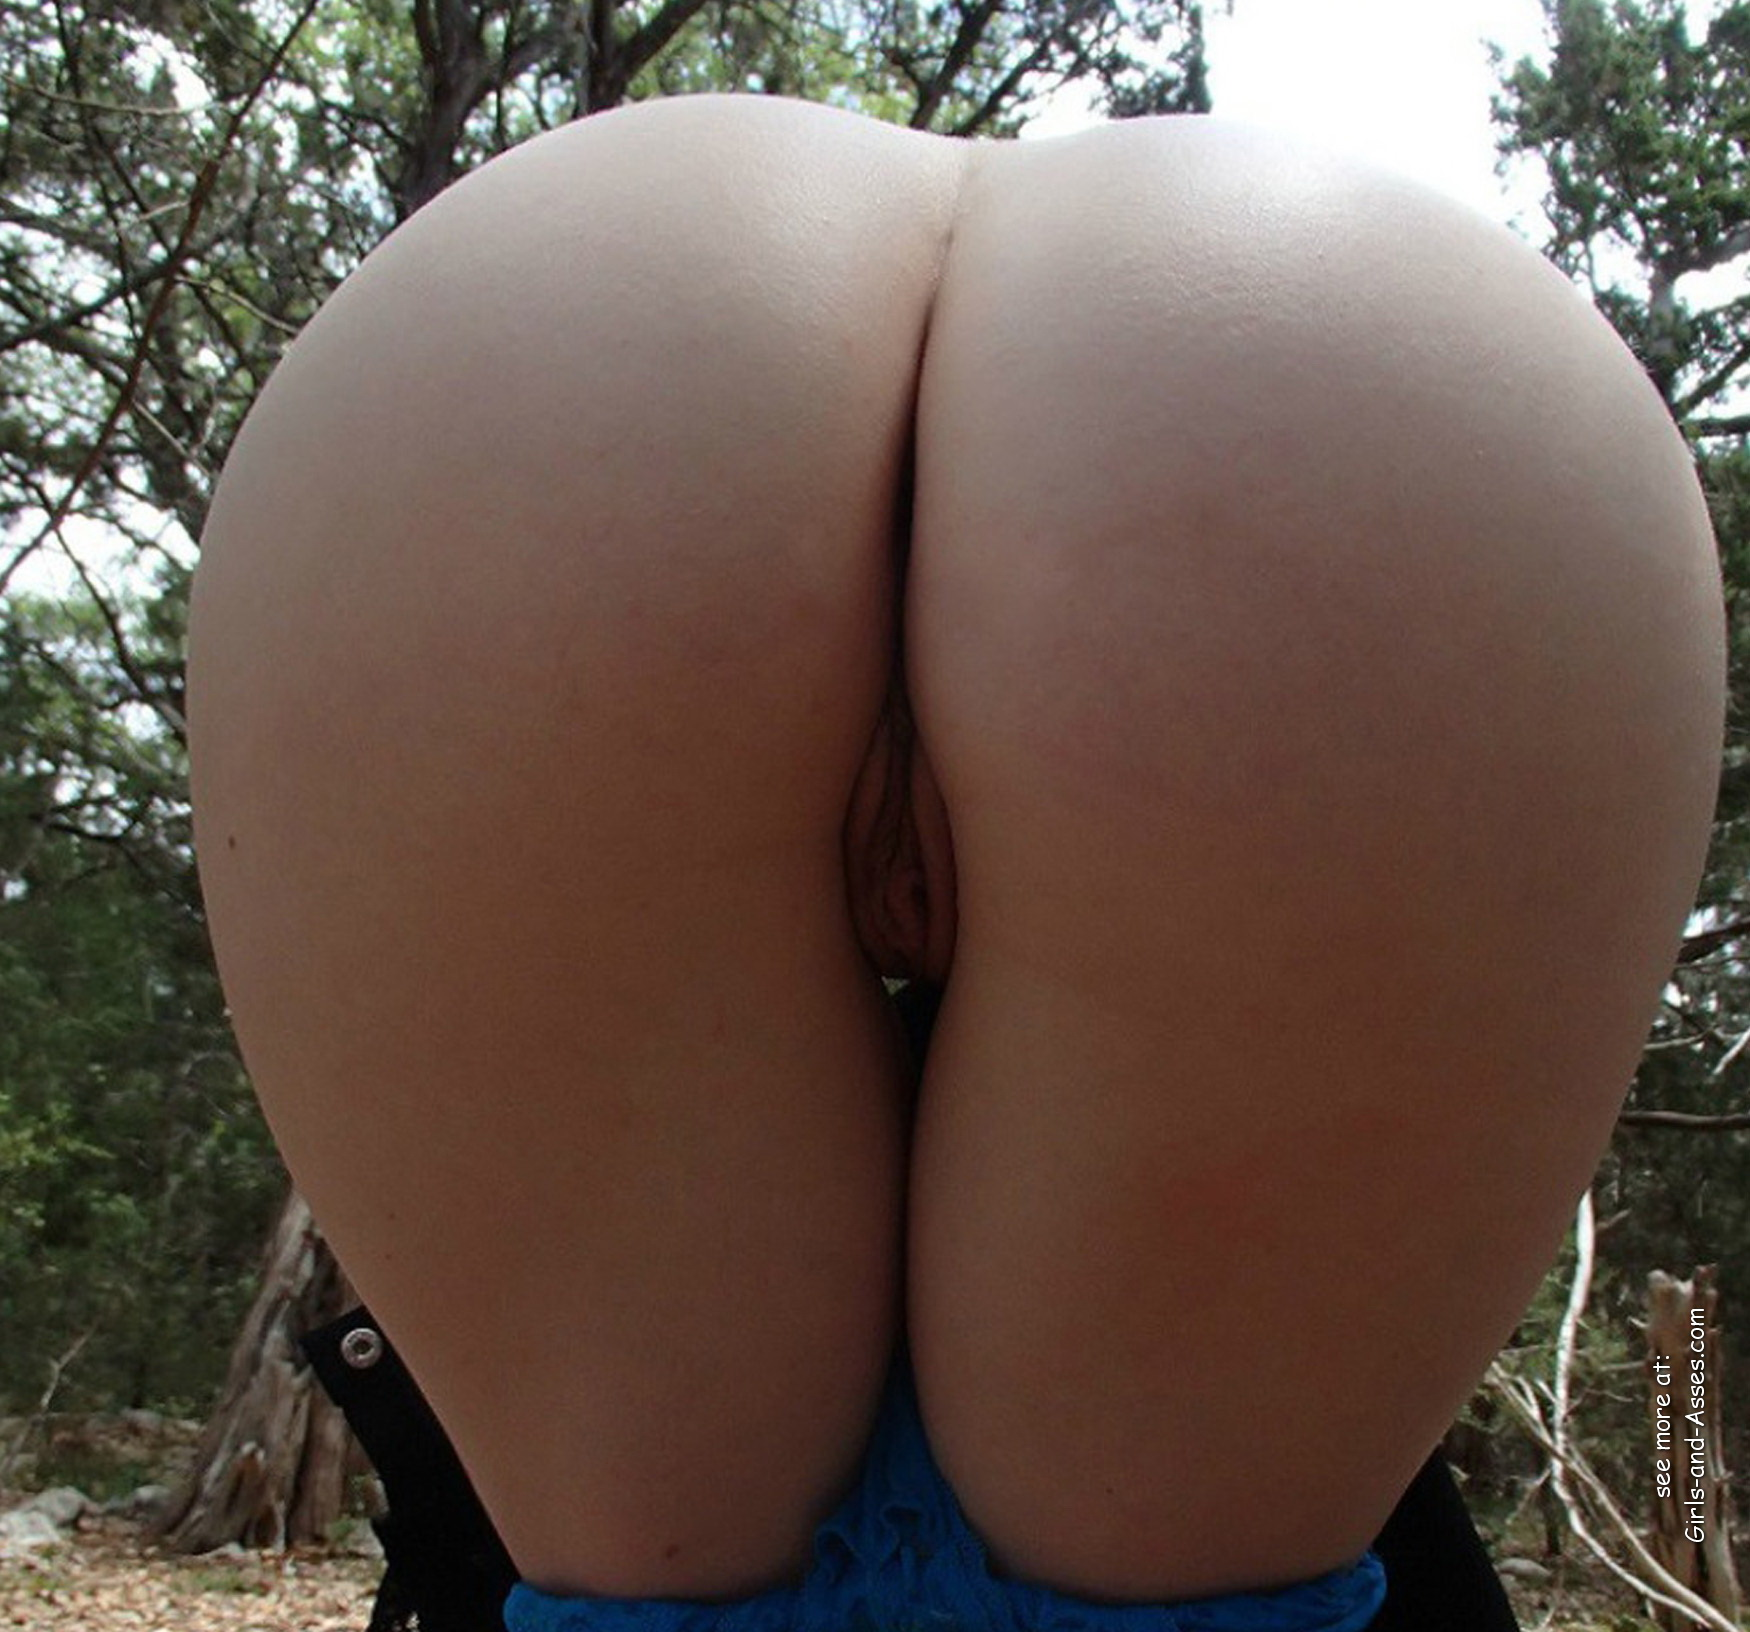 booty in the wild face down ass up picture 01856